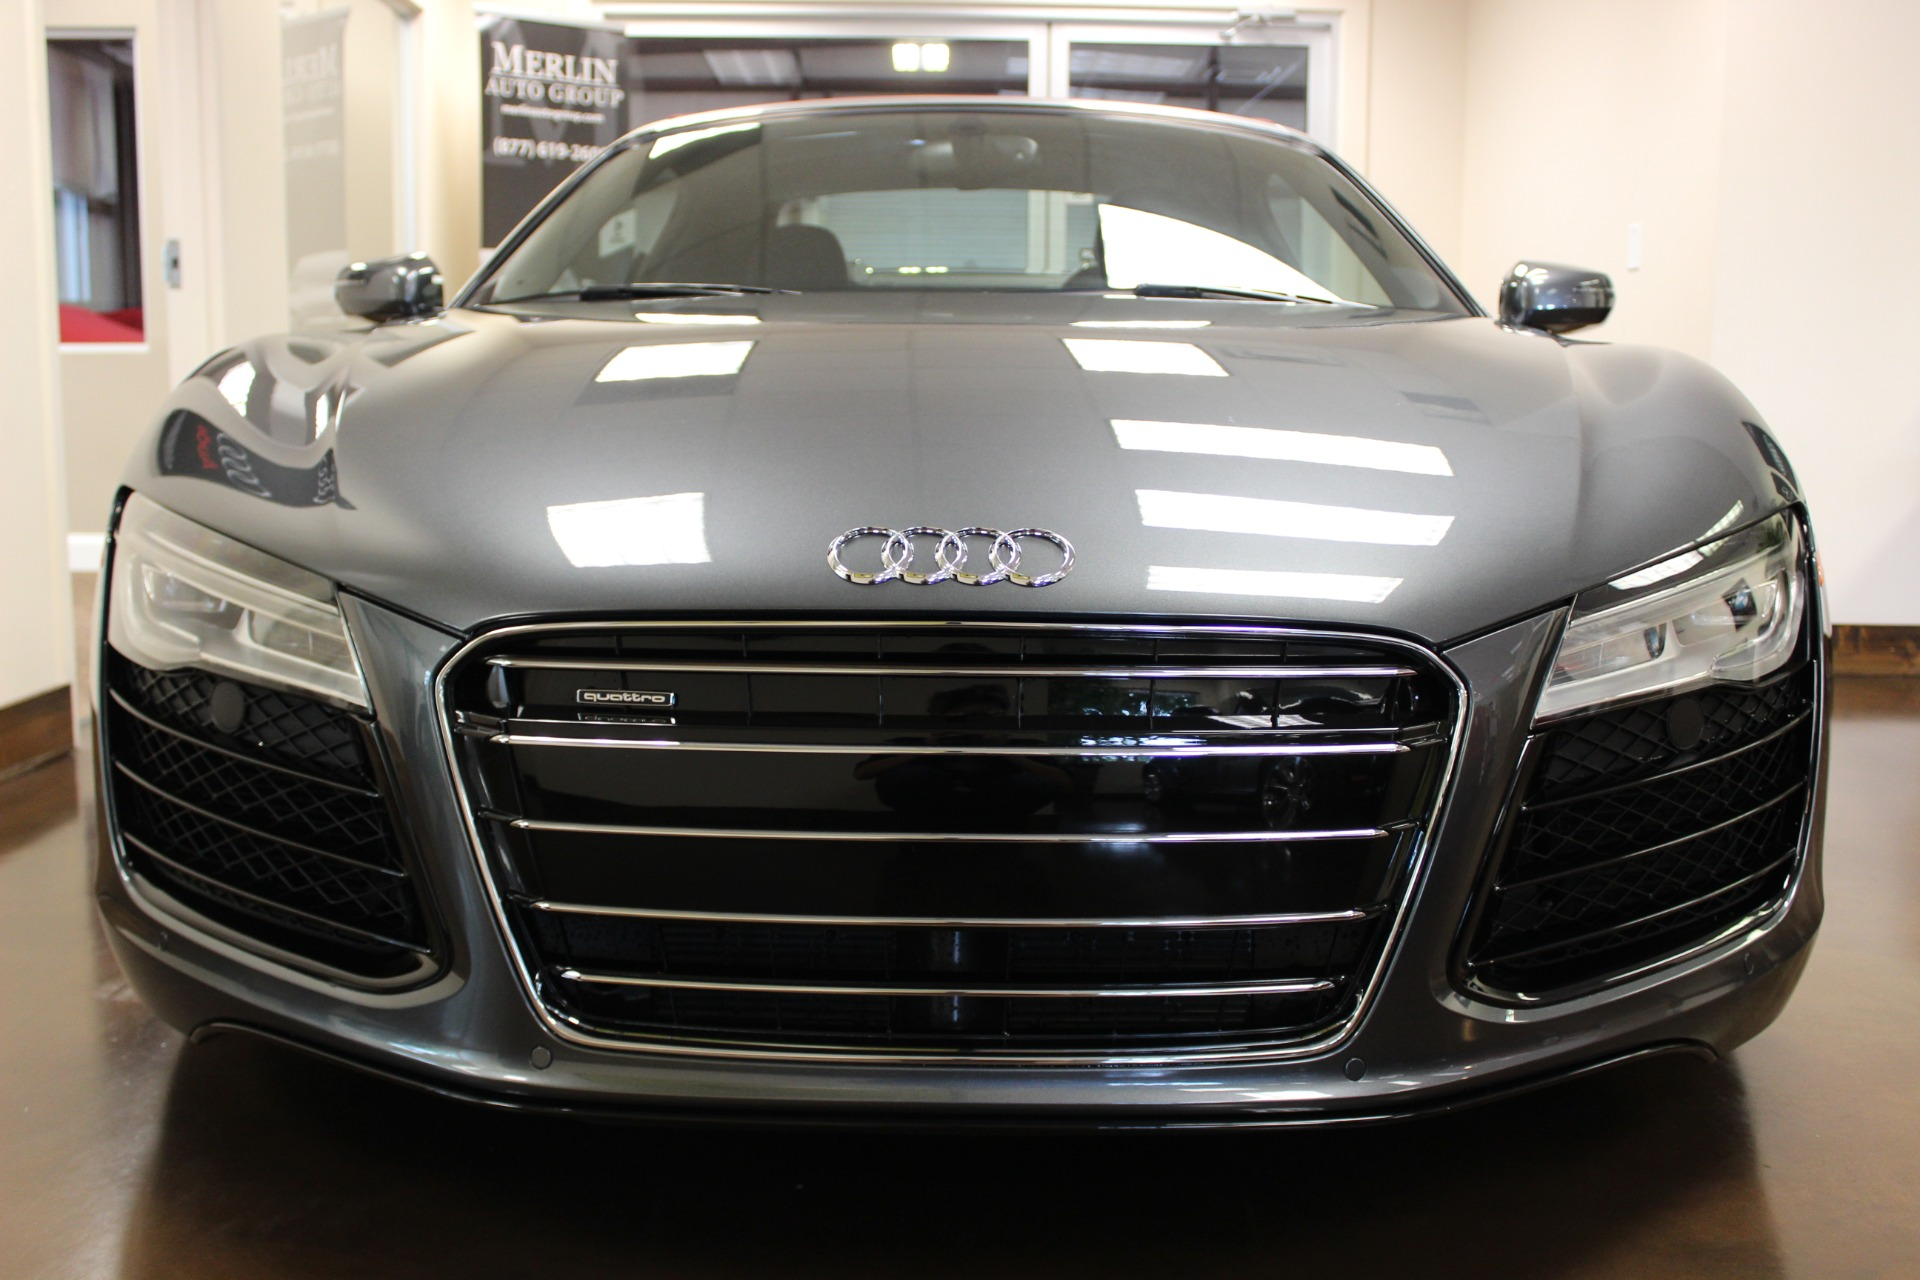 used 2015 audi r8 stock p3062a - ultra luxury car from merlin auto